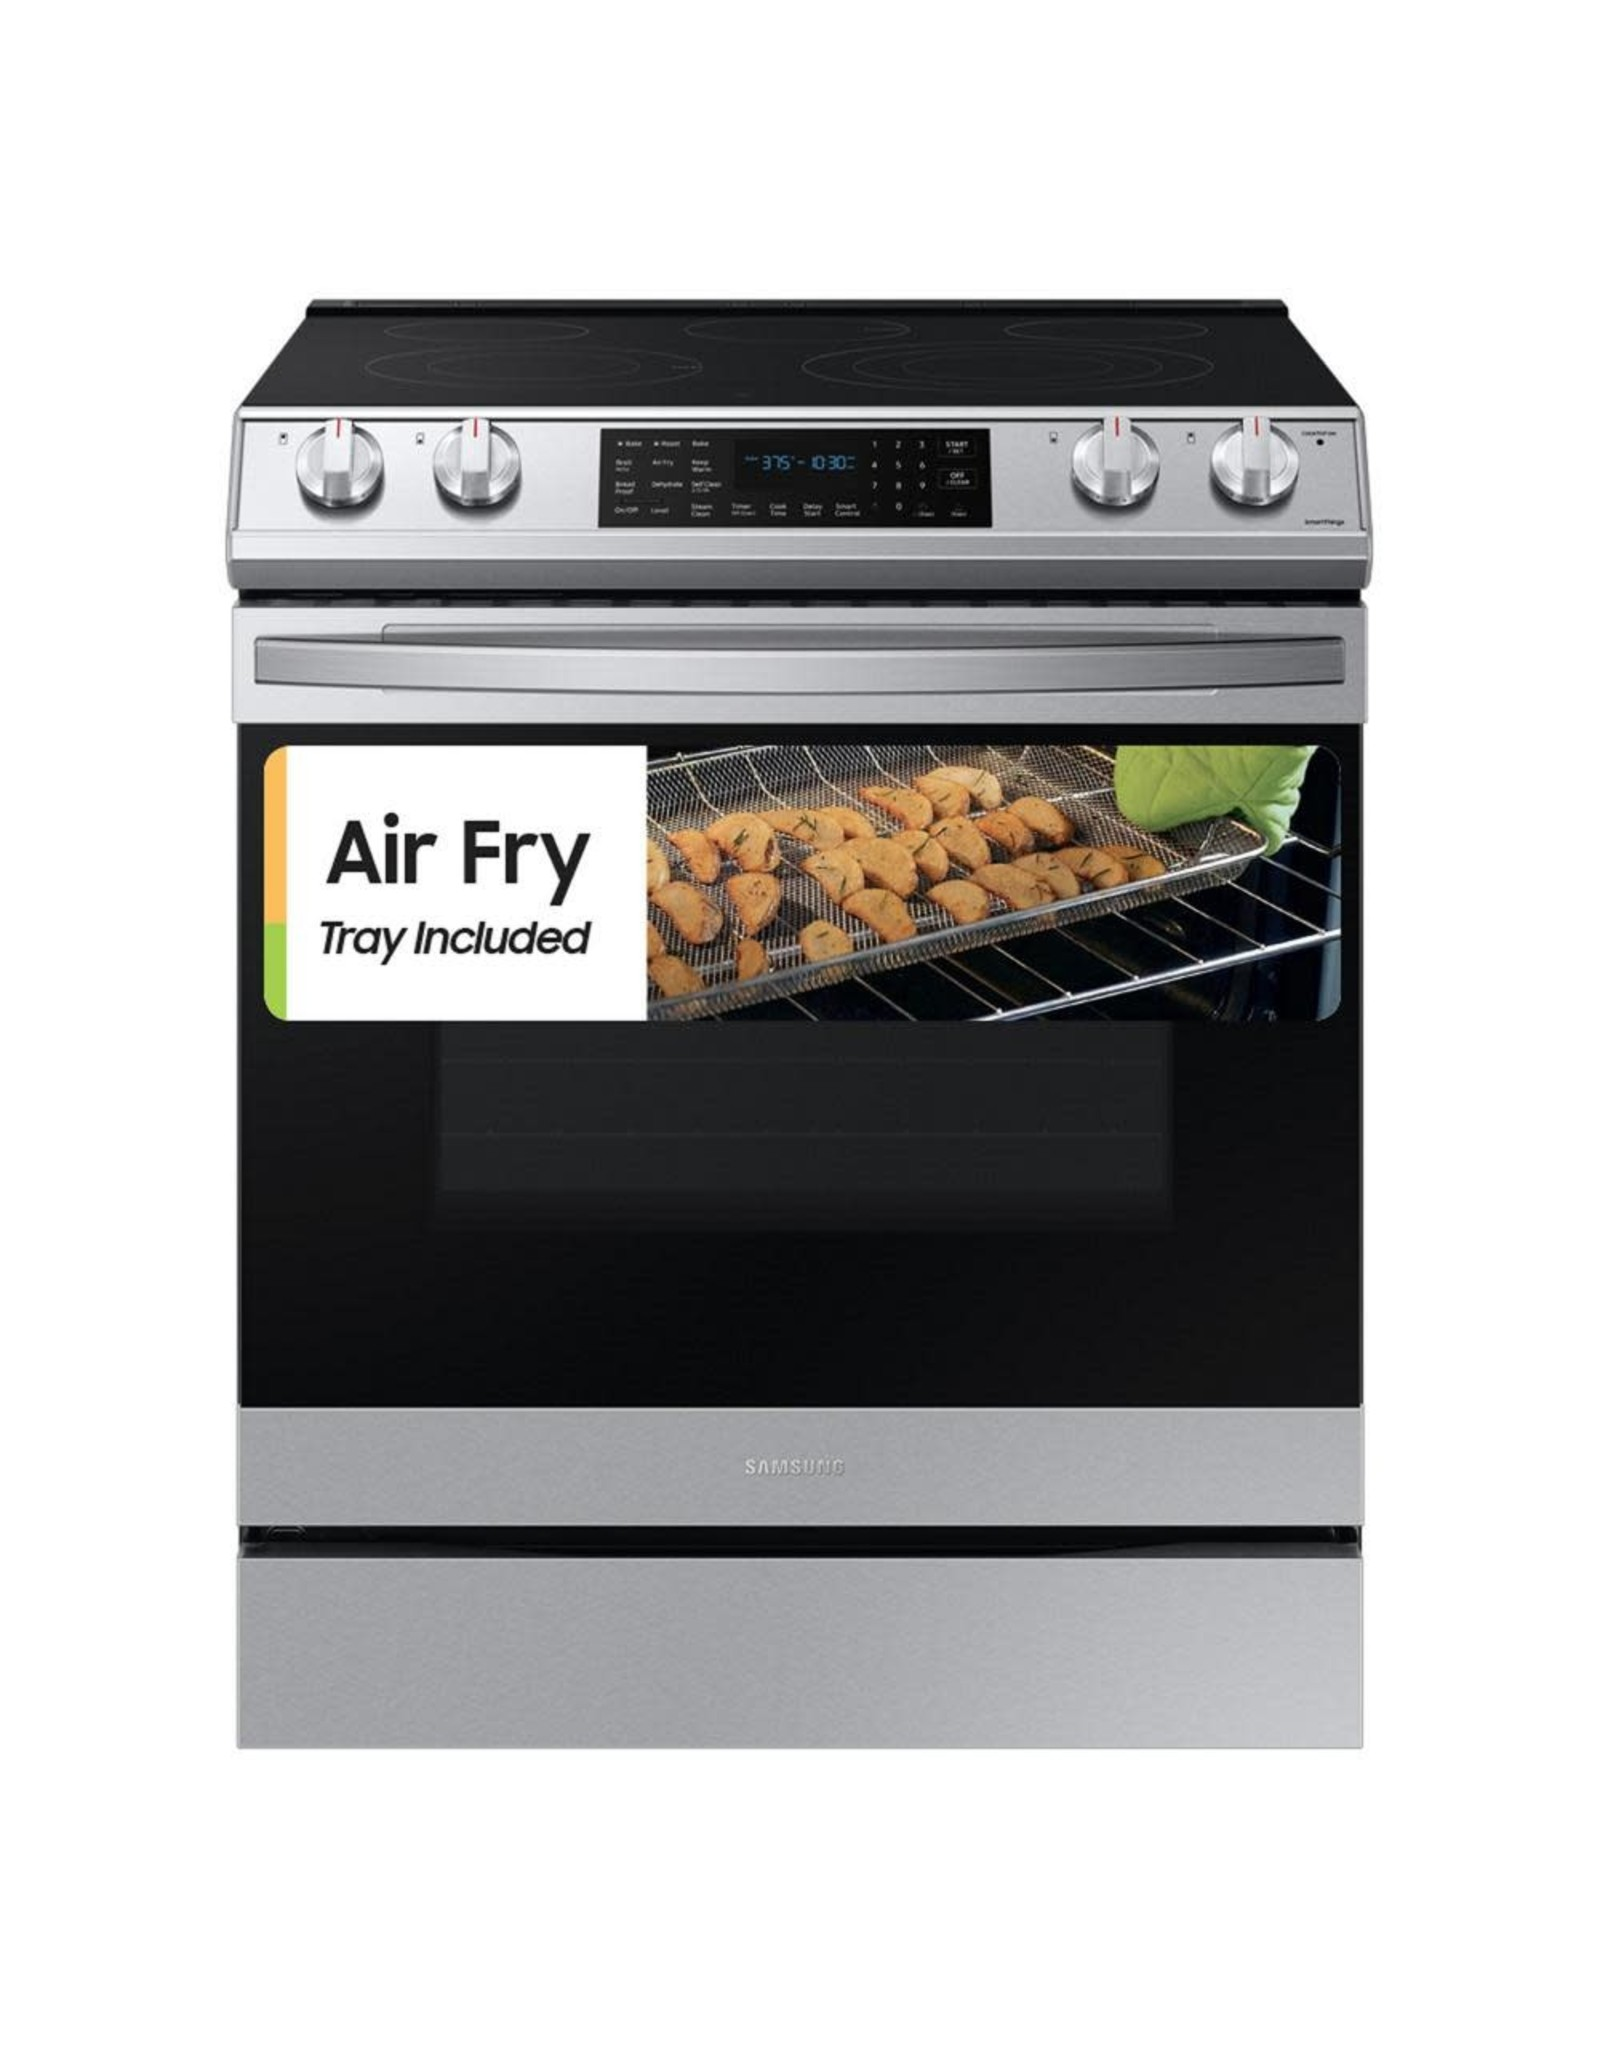 SAMSUNG NE63T8511SS 6.3 cu. ft. Slide-In Electric Range with Air Fry Convection Oven in Fingerprint Resistant Stainless Steel